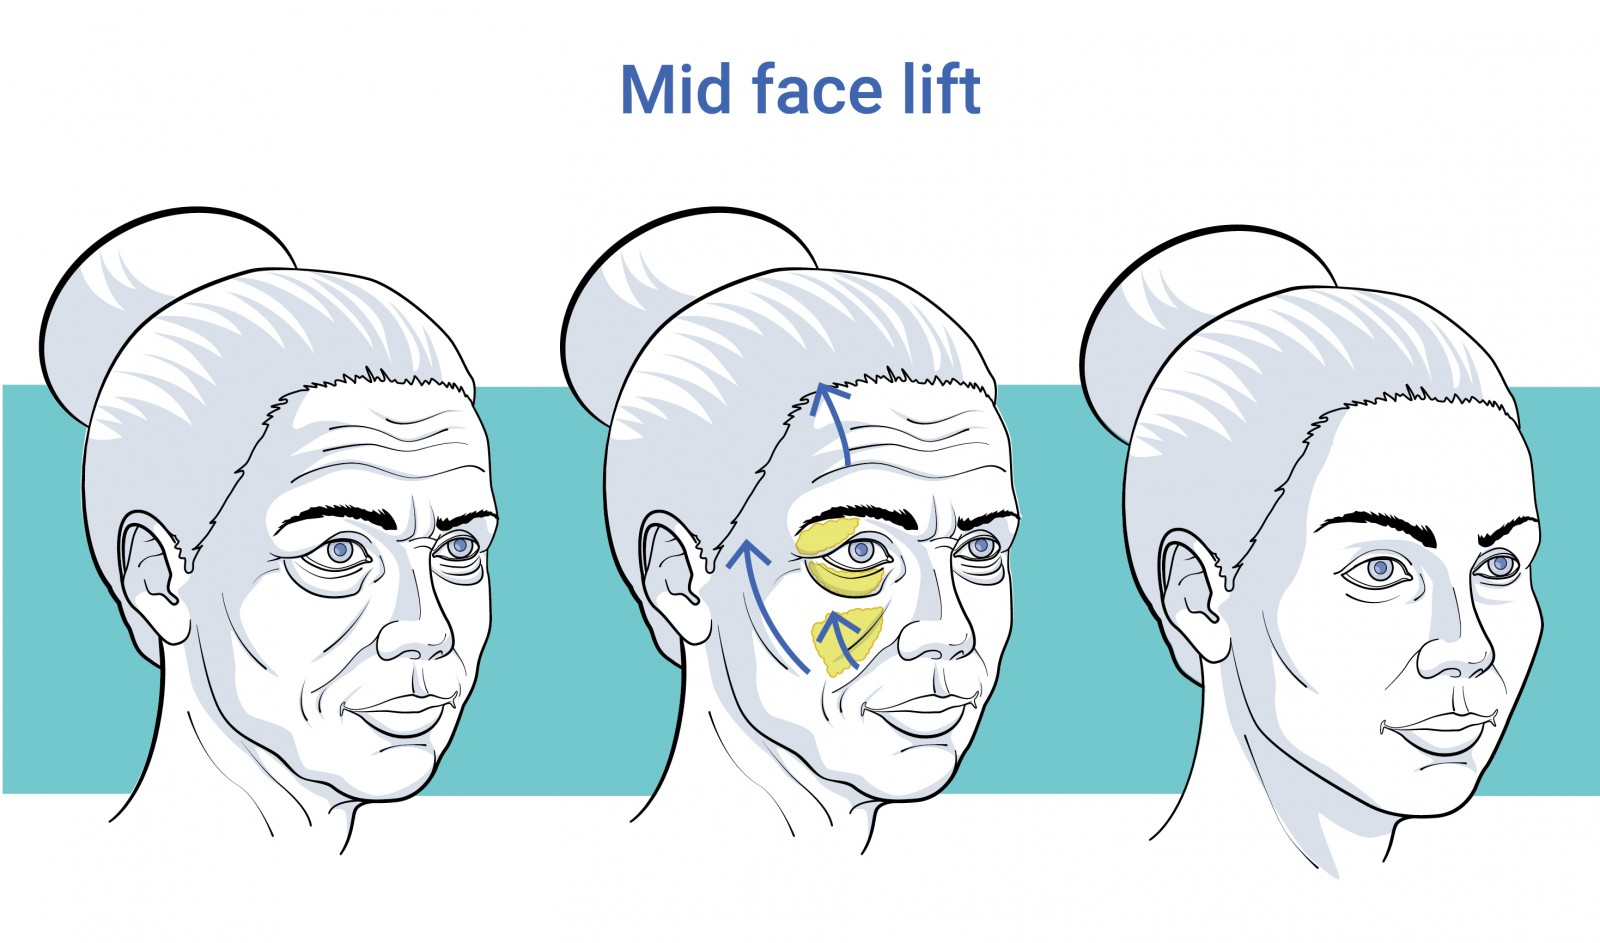 Facial surgery midfacelift before and after treatment in Antwerp